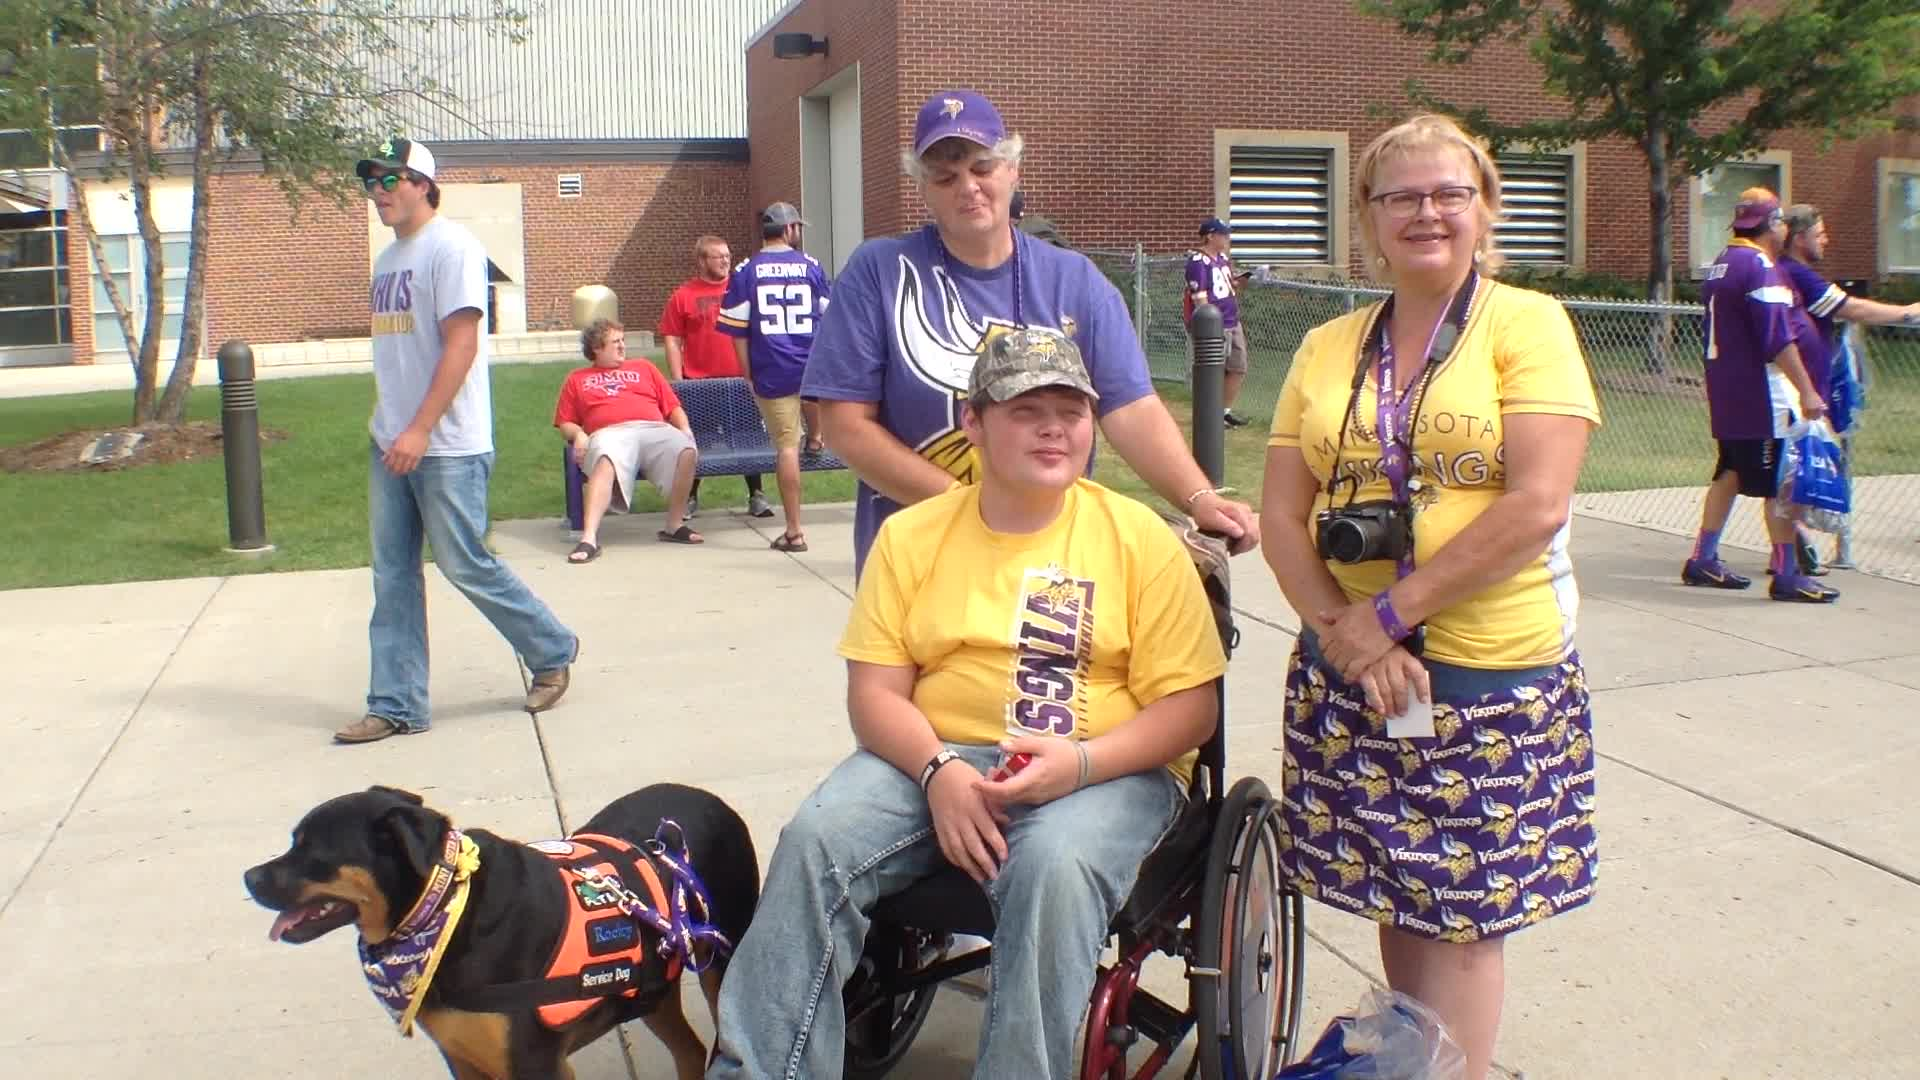 Sherry Smith, Lane Mclain and Kathy Seely, Gary, SD - Fan experience at Minnesota Vikings Training Camp at Minnesota State University, Mankato